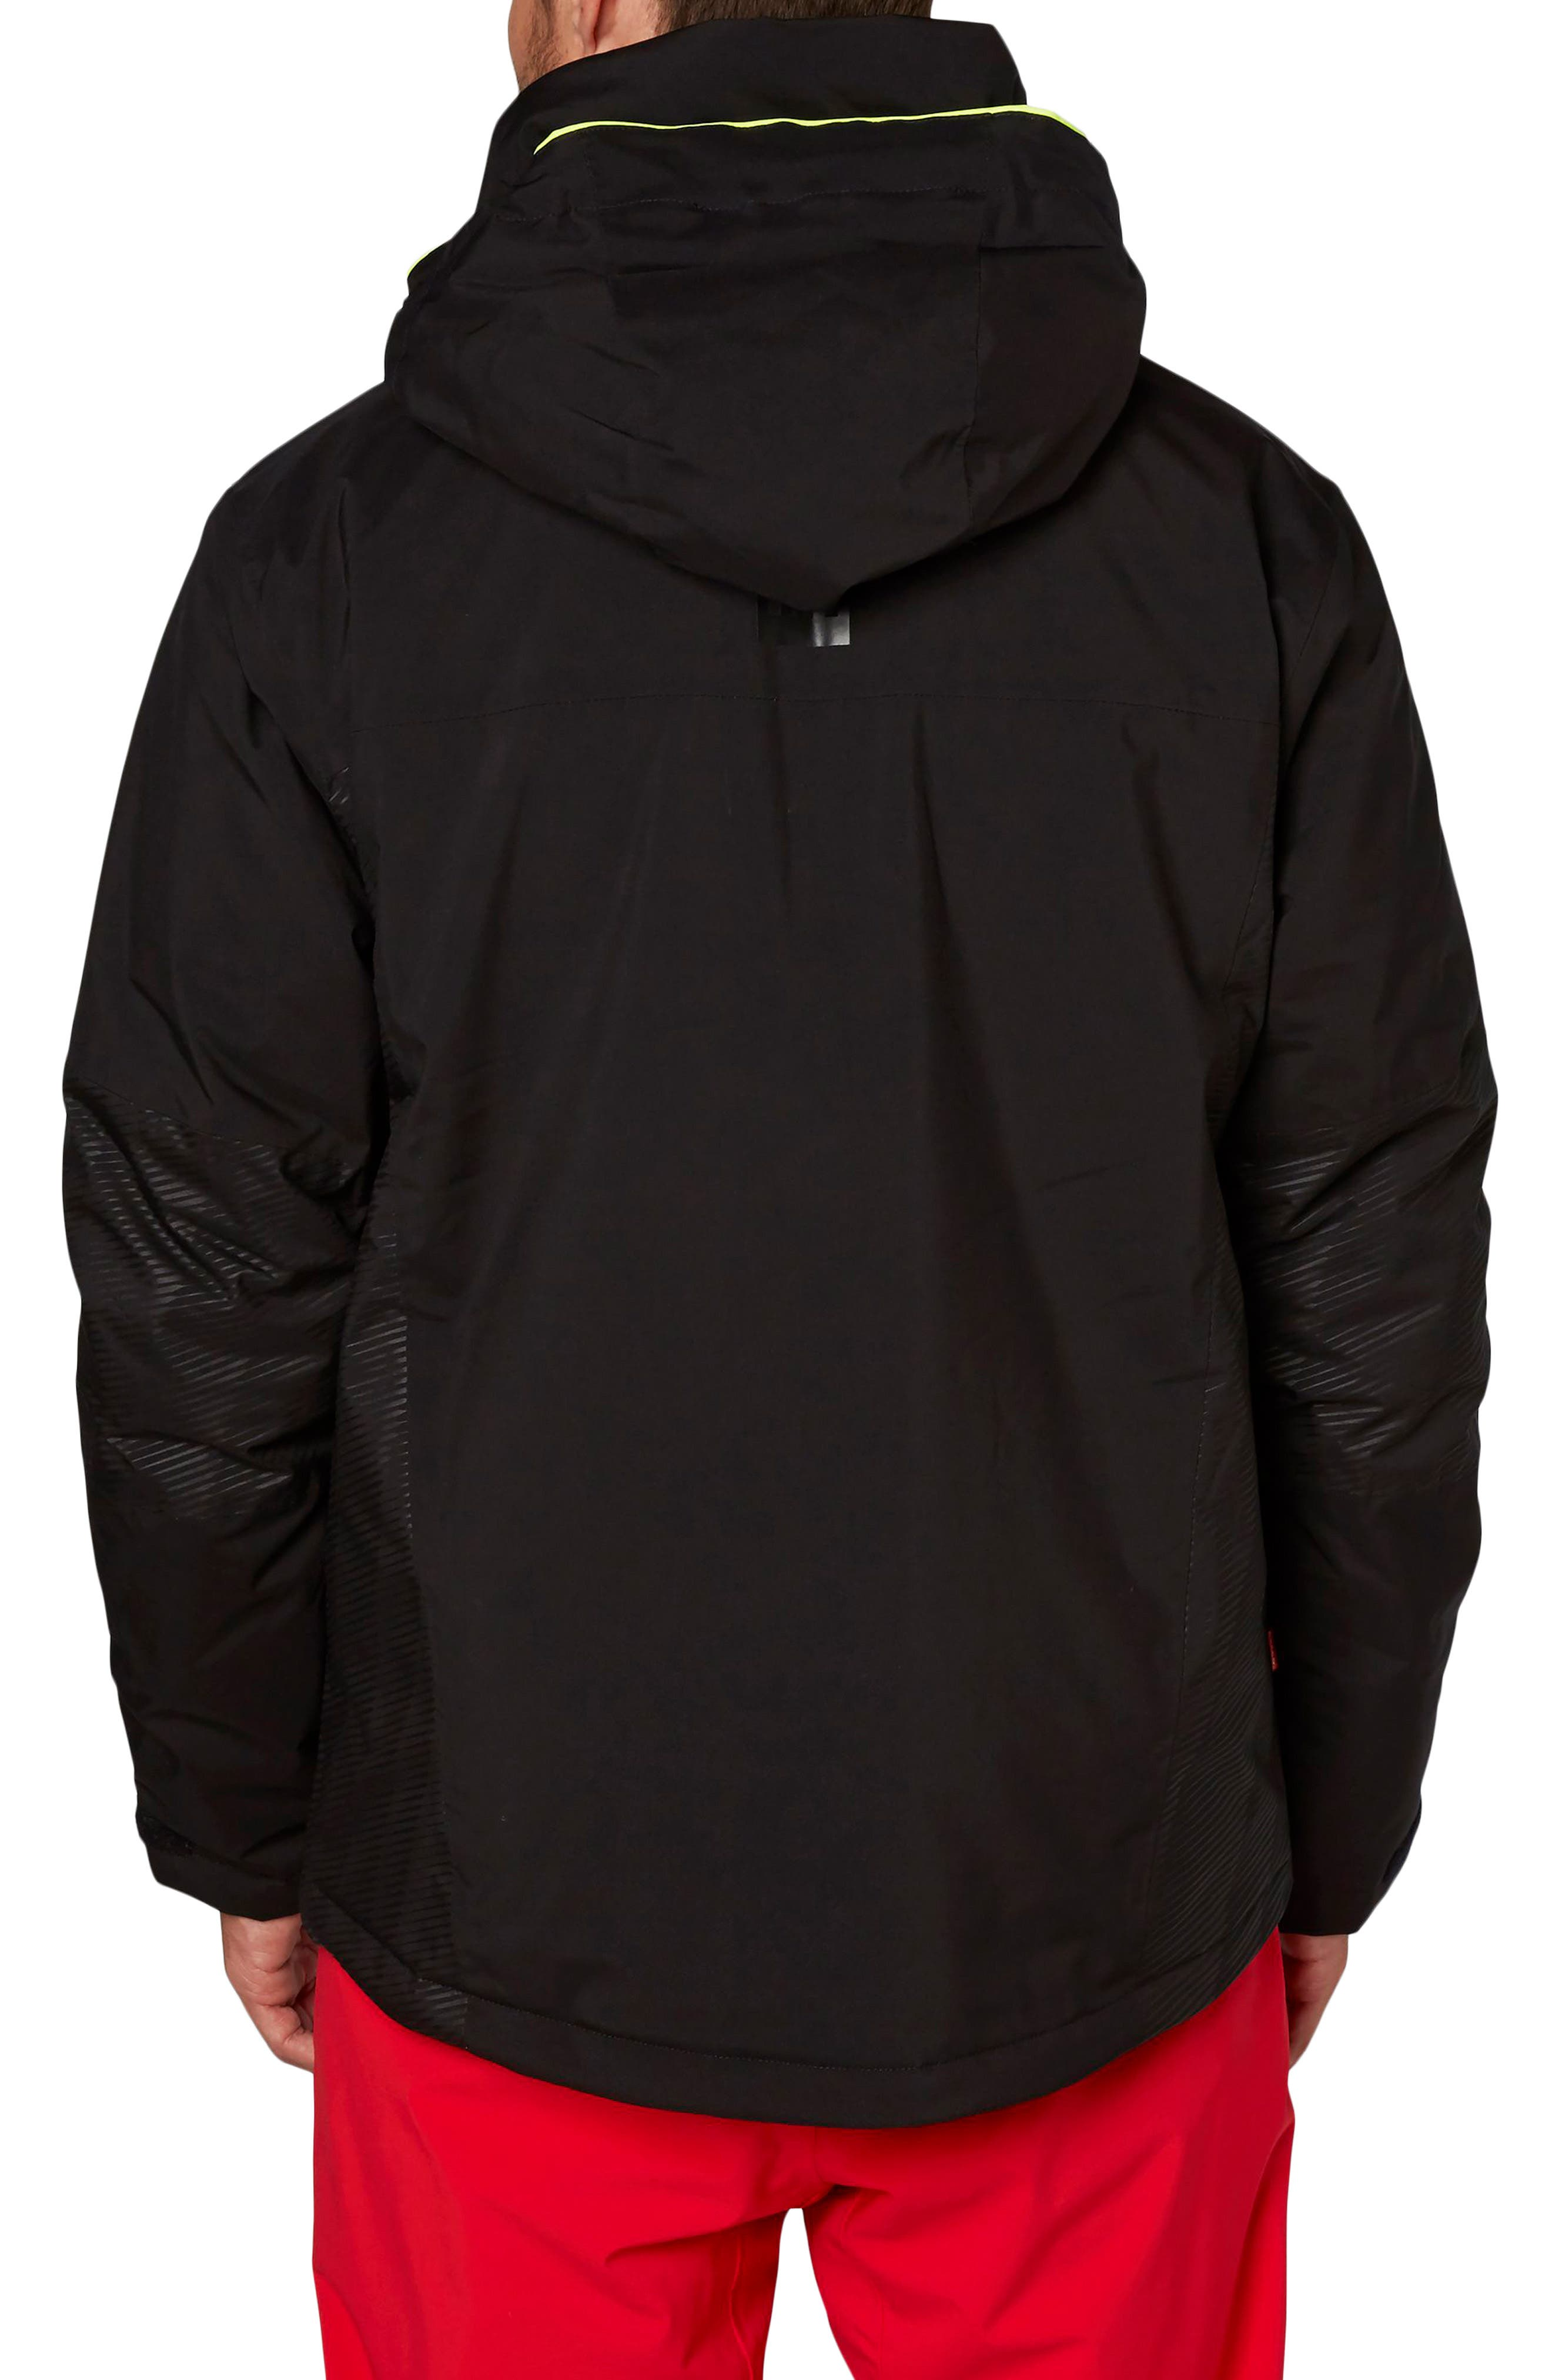 Alternate Image 2  - Helly Hansen Double Diamond Waterproof Jacket